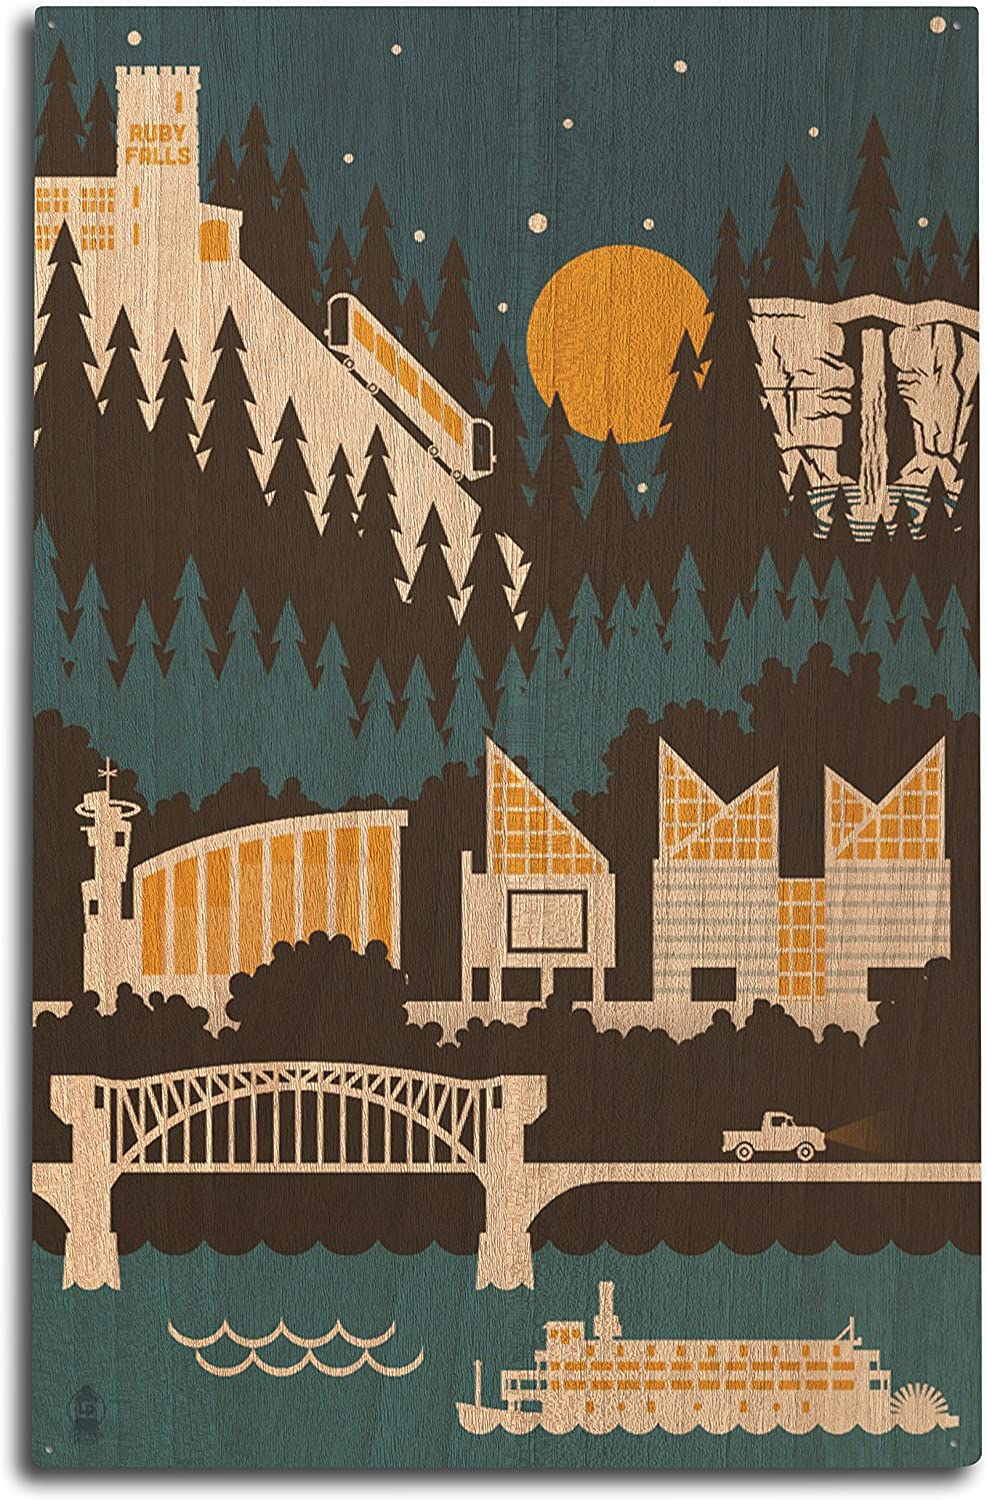 Lantern Press Chattanooga, Tennesseee - Retro Skyline (no Text) (10x15 Wood Wall Sign, Wall Decor Ready to Hang)